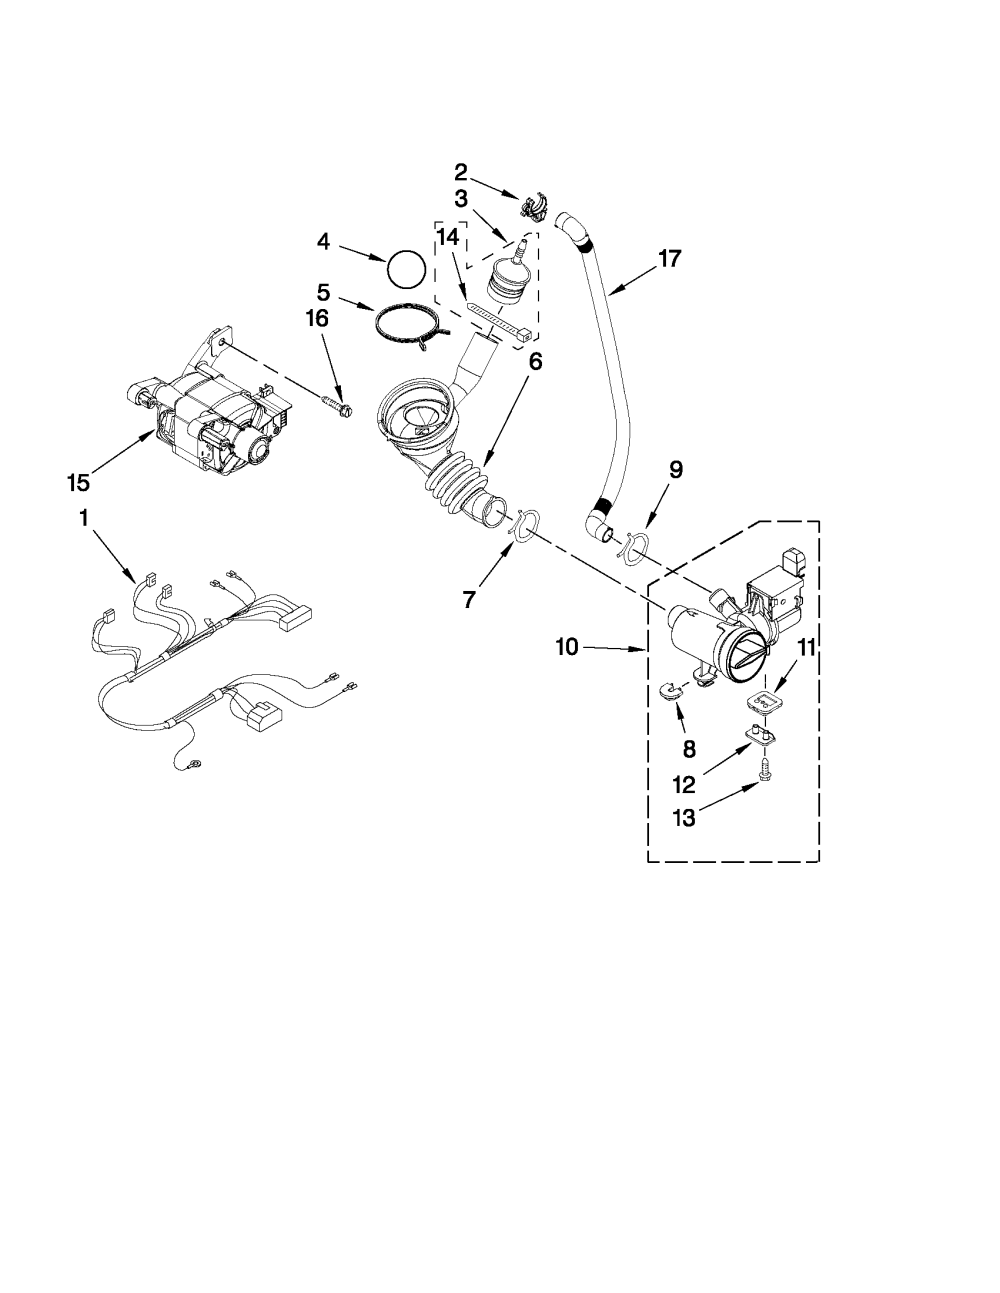 medium resolution of whirlpool wfw9150ww01 pump and motor parts diagram